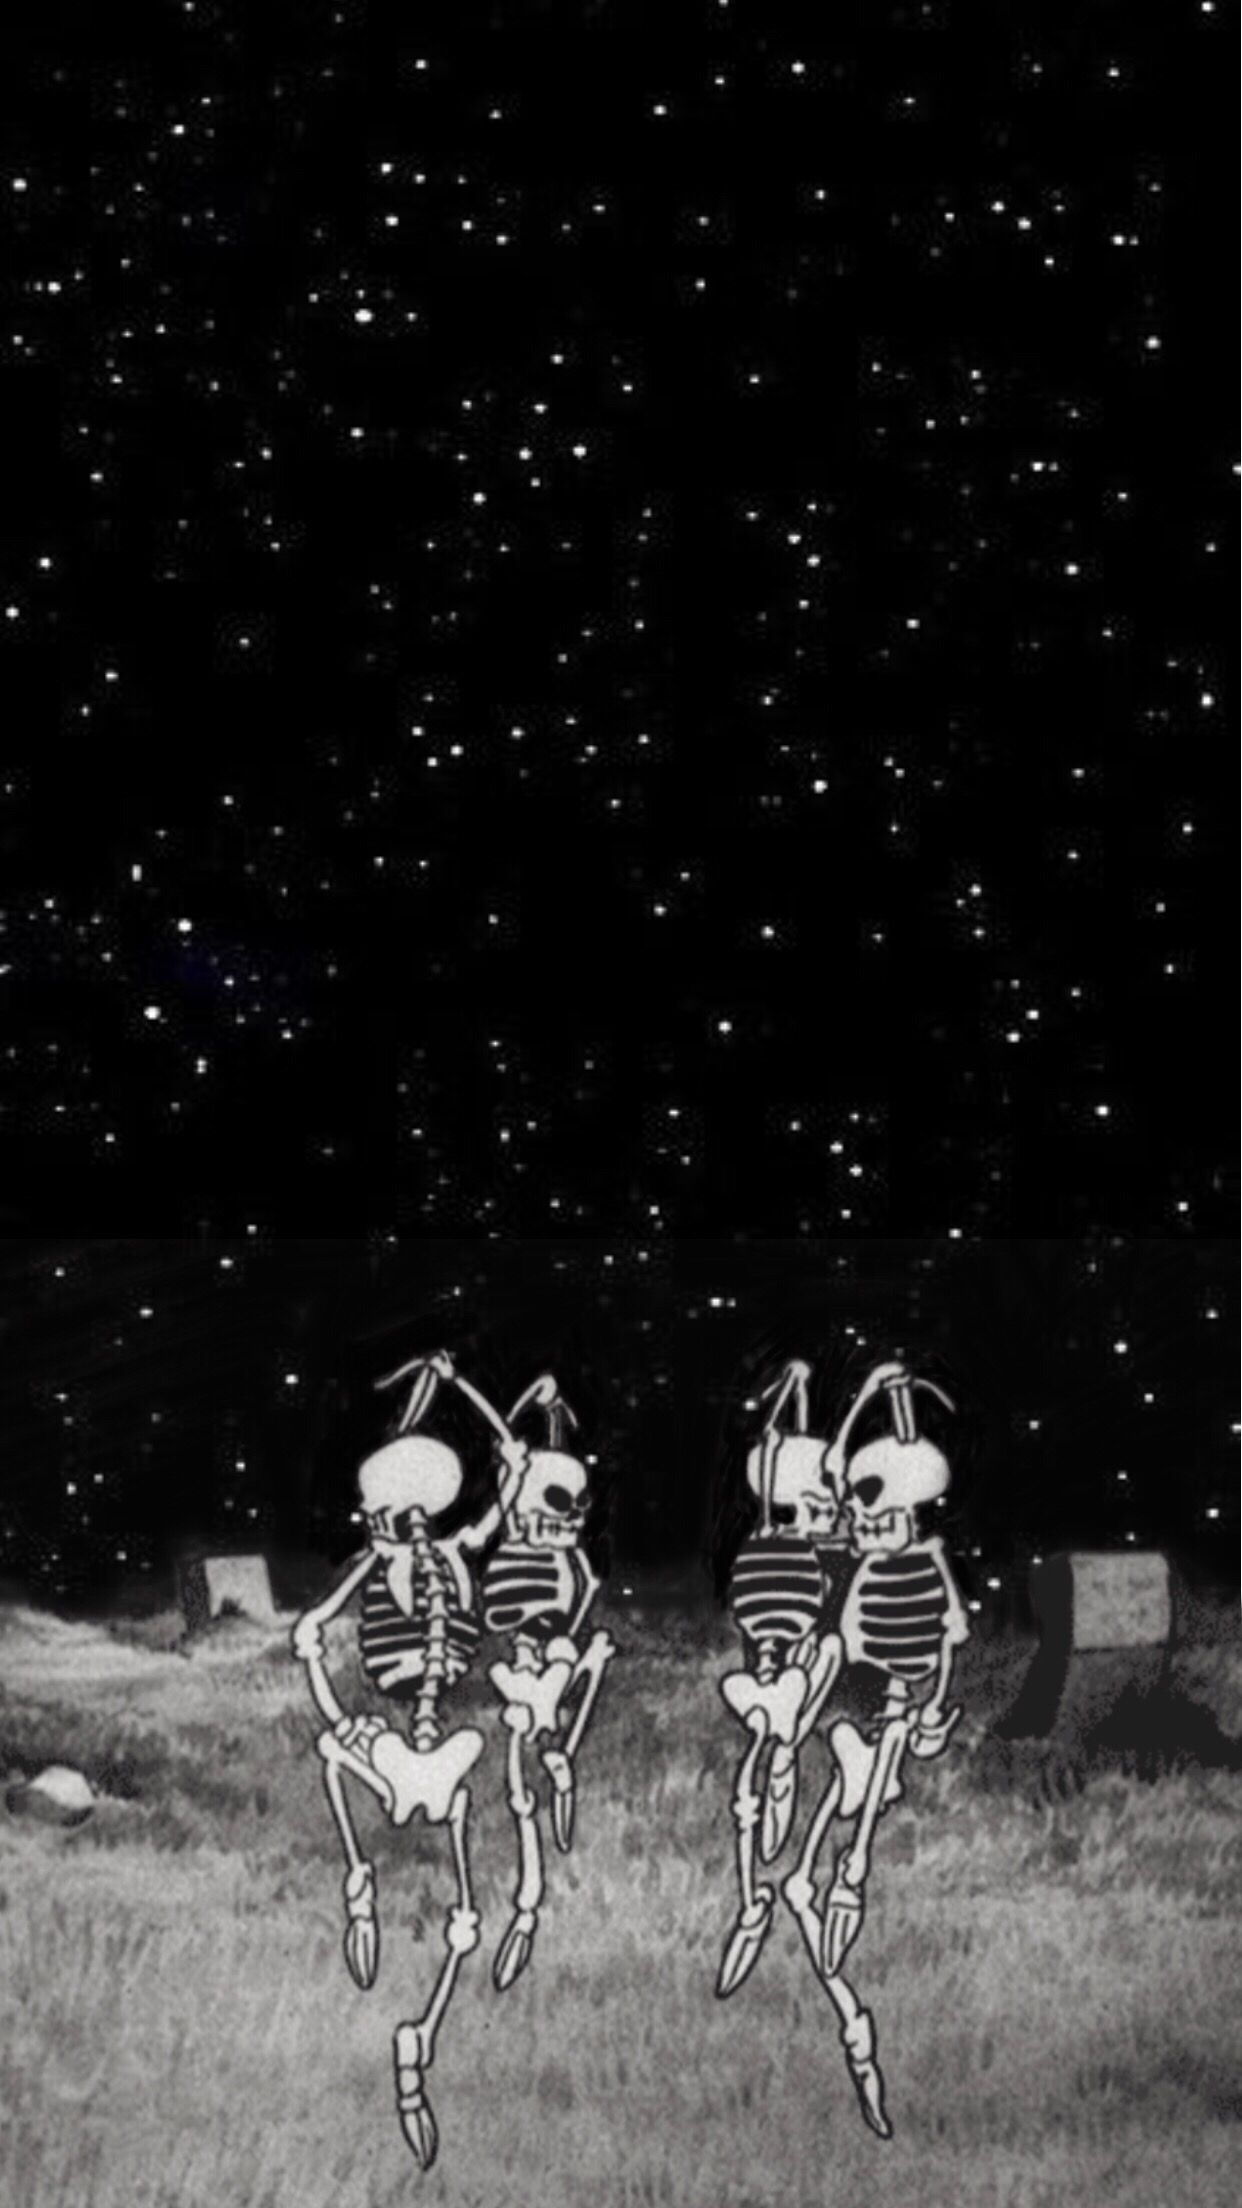 Pin By Illegal On Wallpaper Halloween Wallpaper Iphone Black Aesthetic Wallpaper Cute Wallpapers